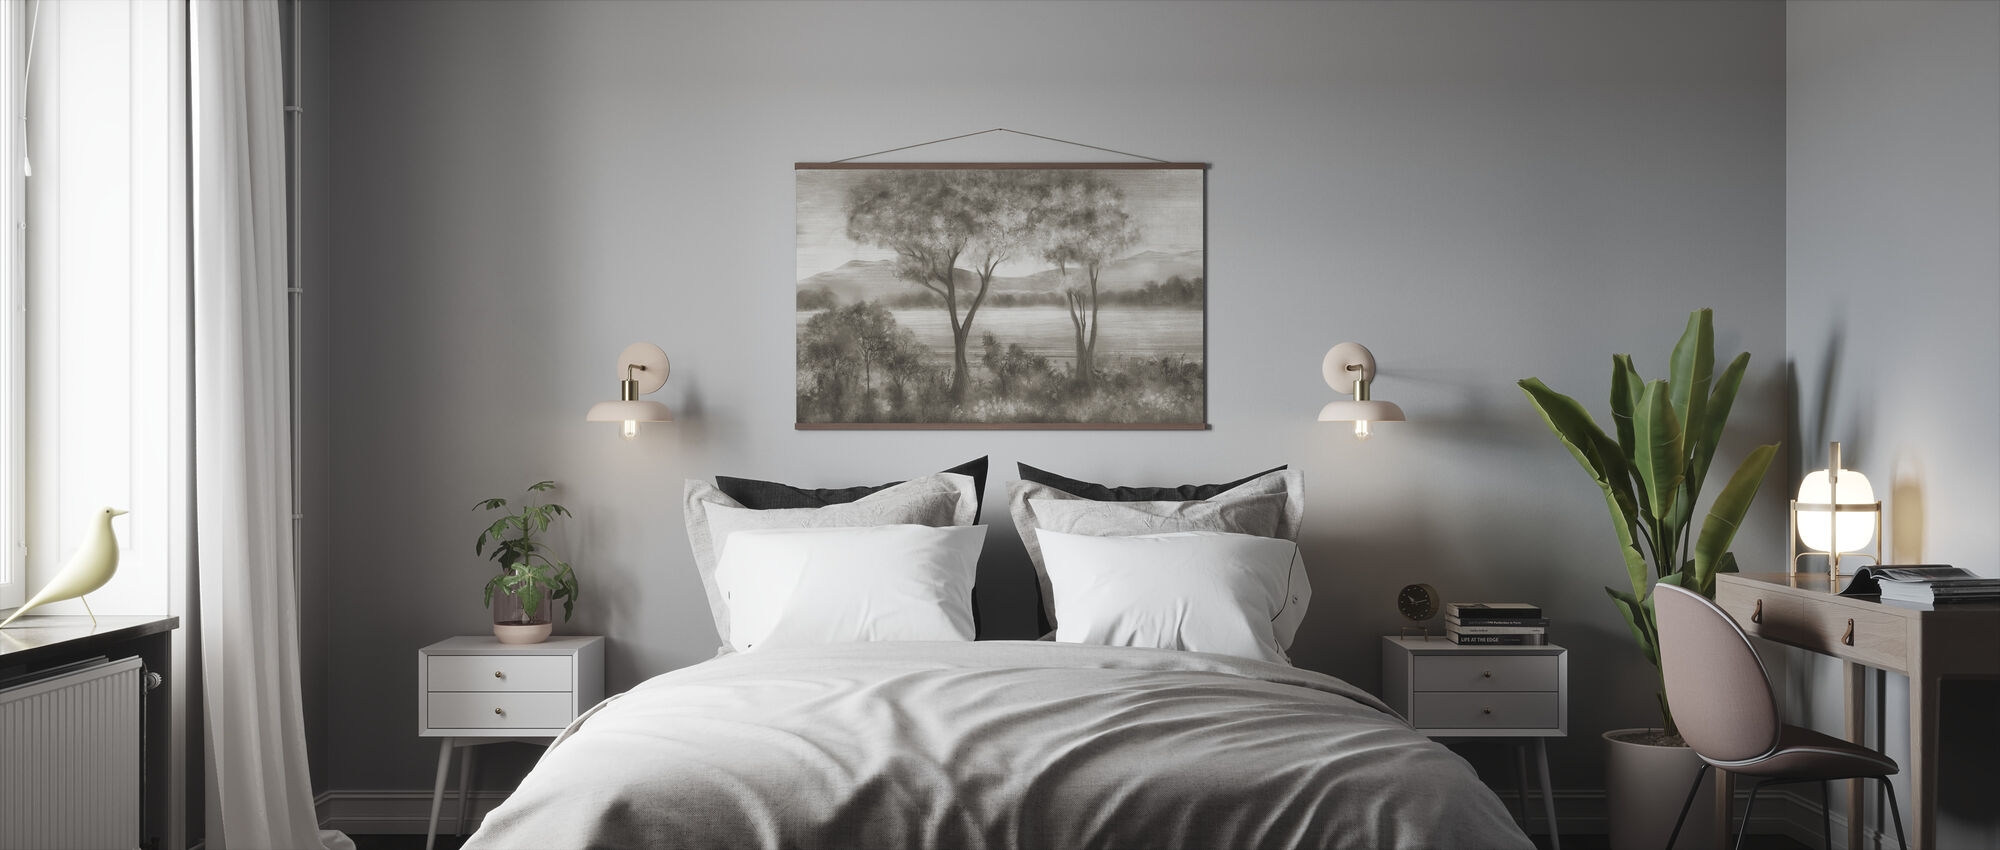 Lay of the Land - Poster - Bedroom